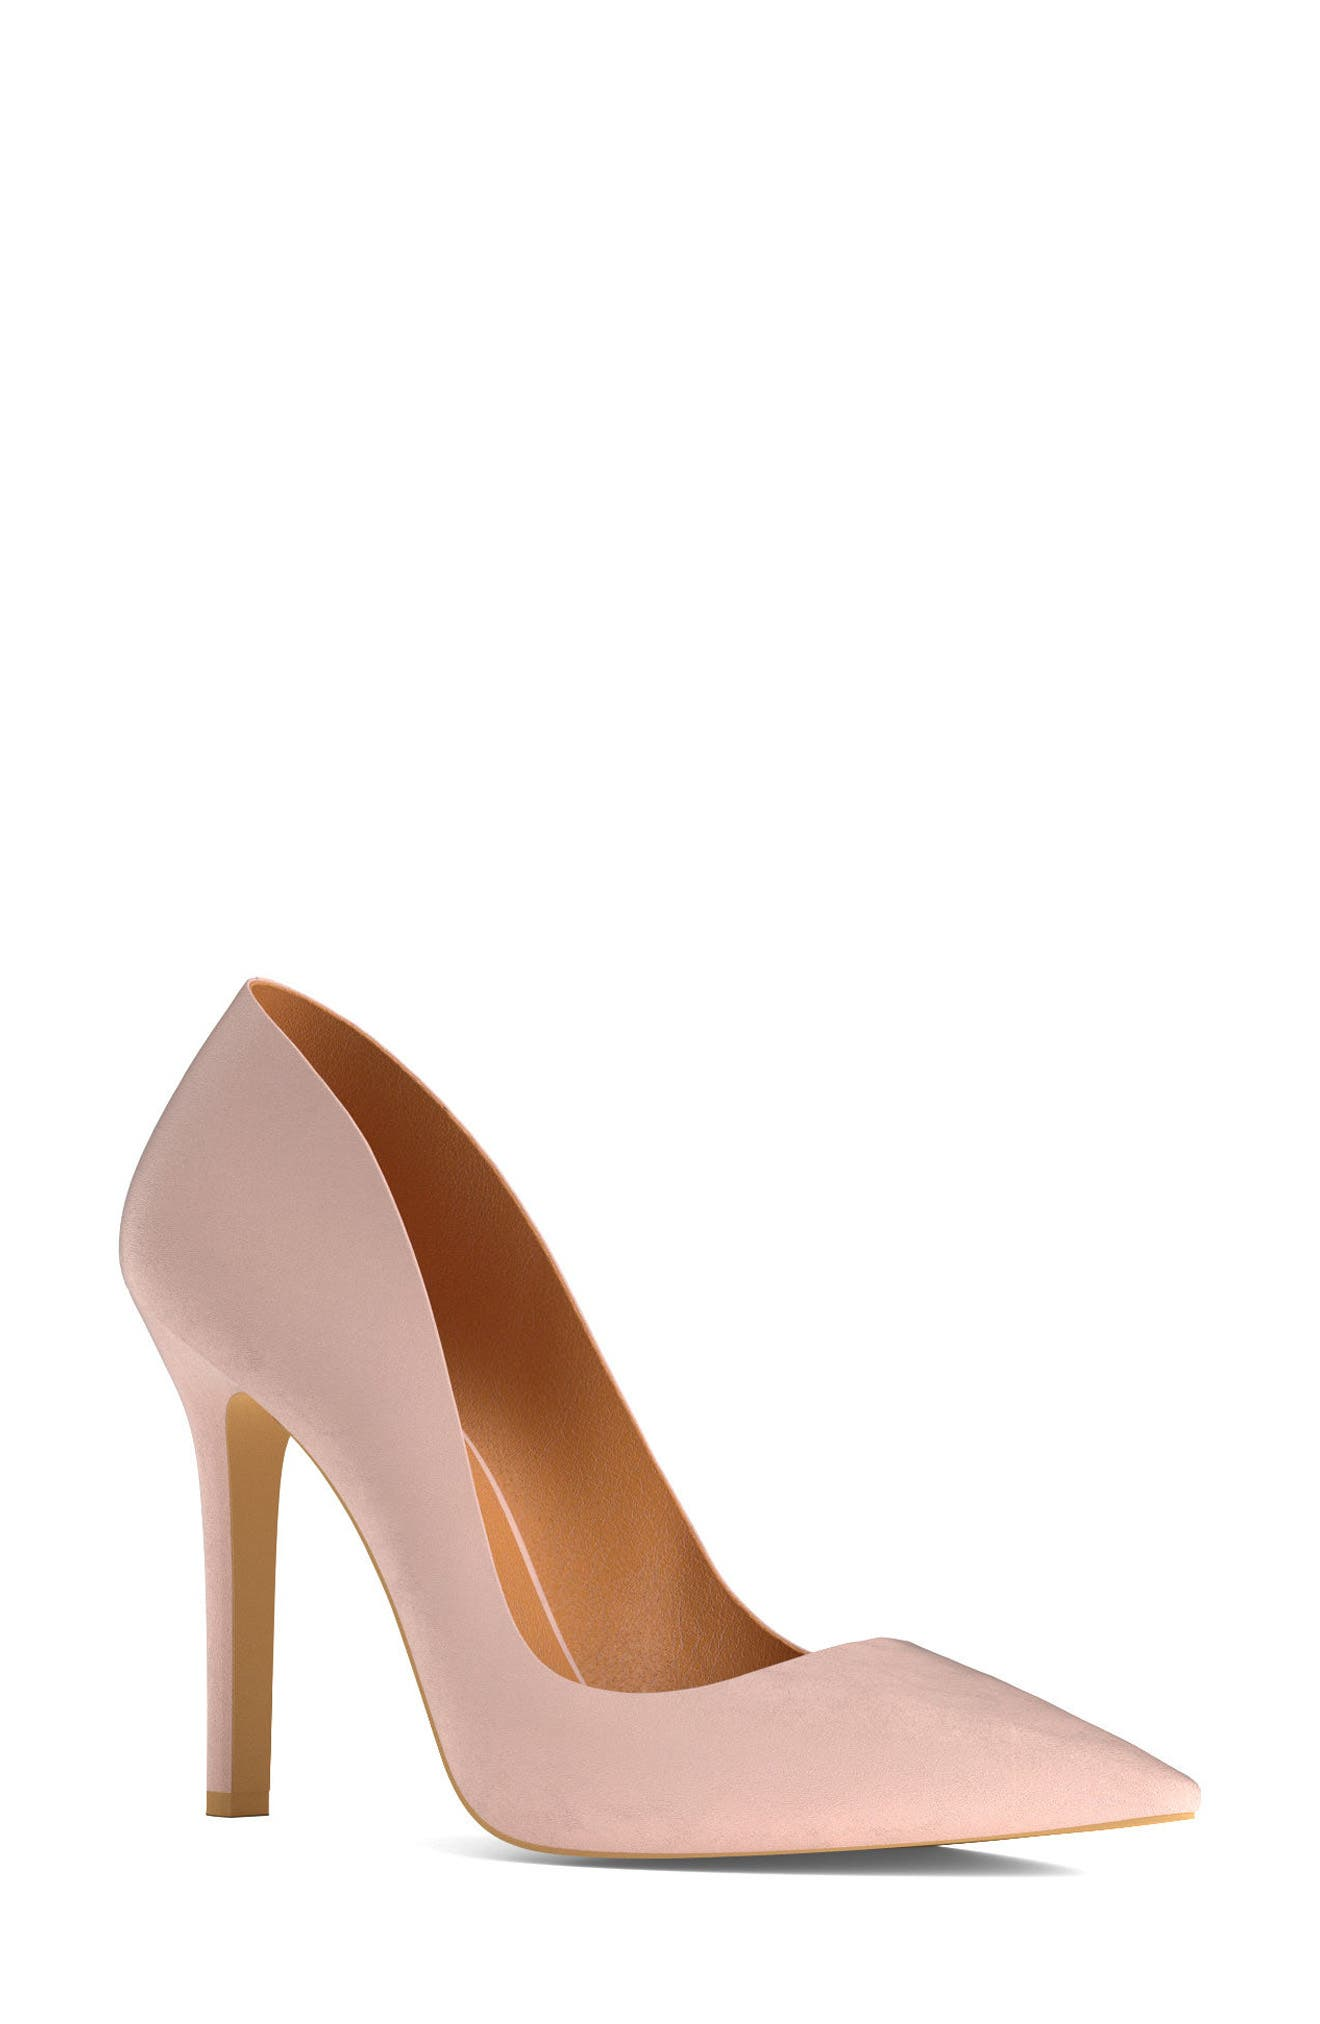 Main Image - Shoes of Prey Pointy Toe Pump (Women)